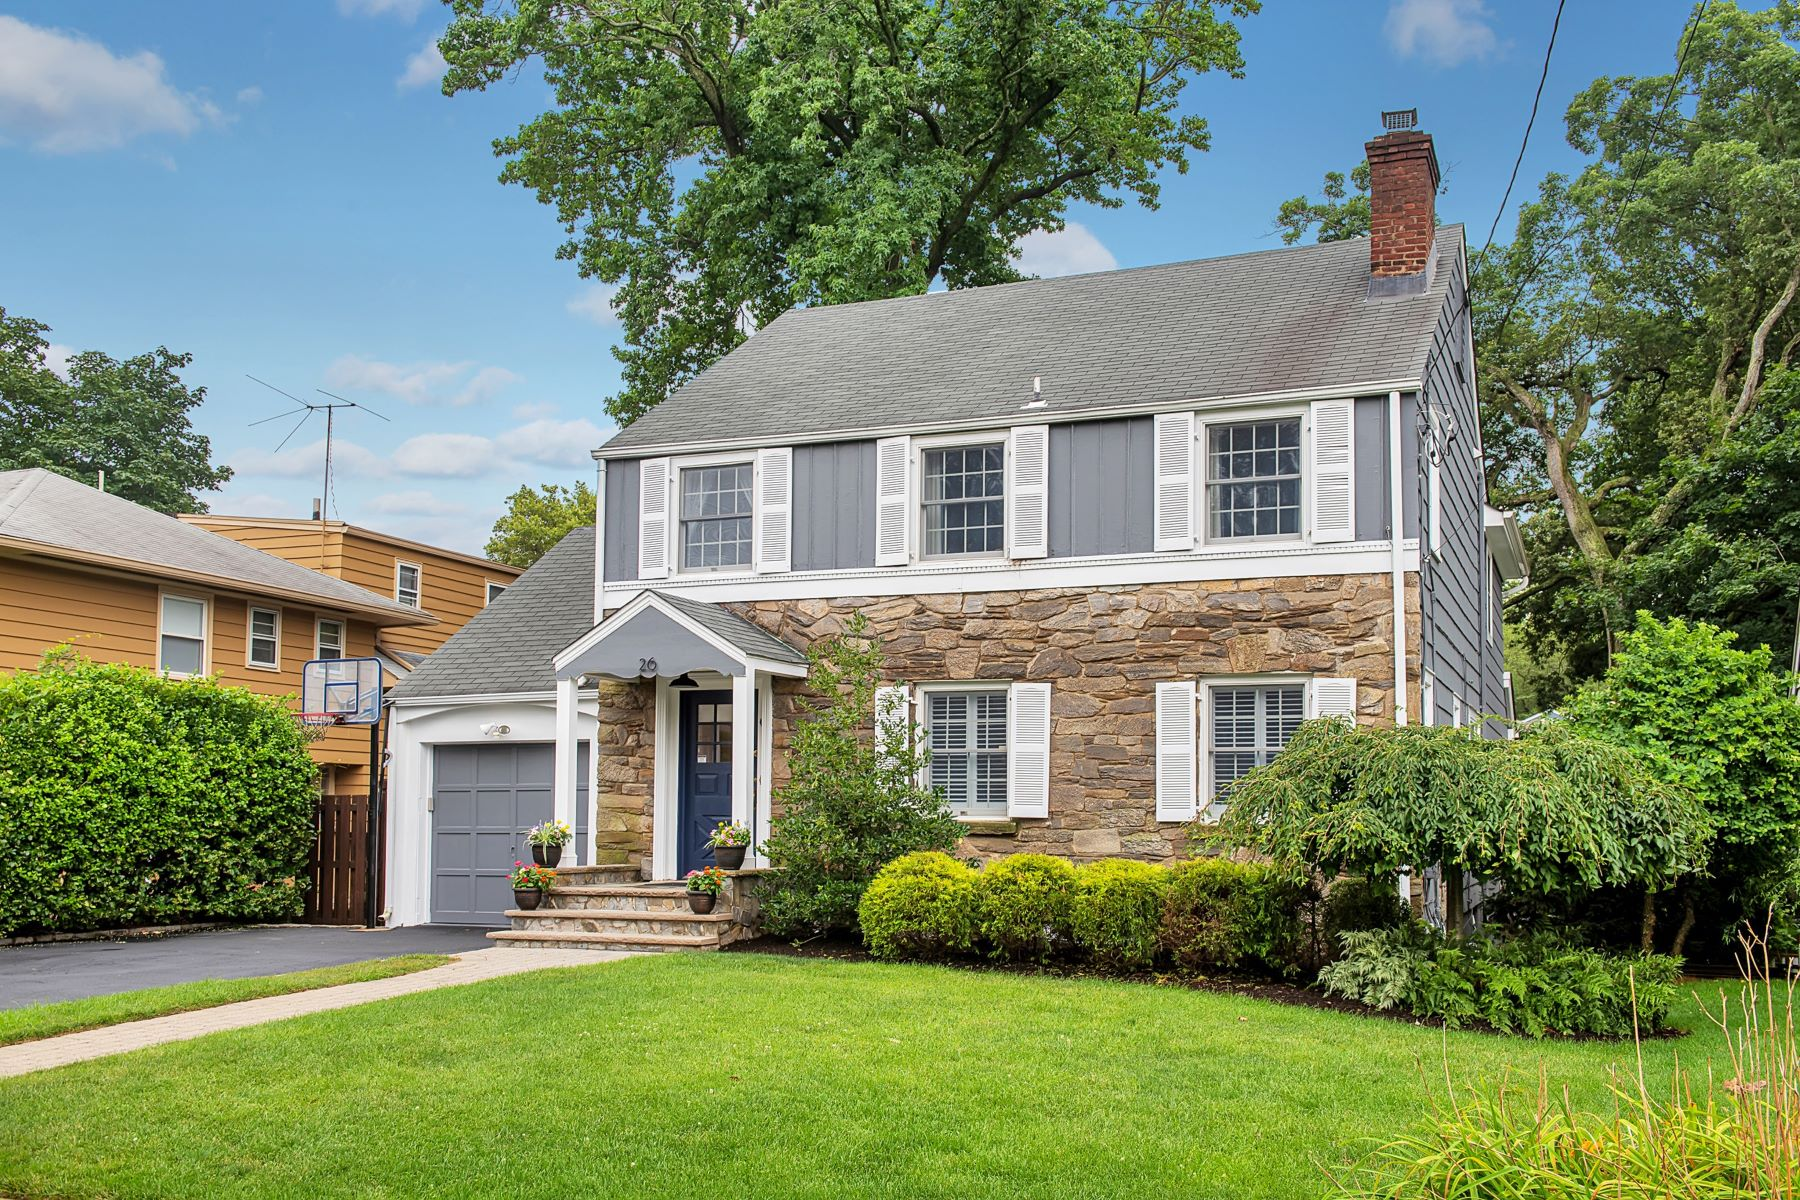 Single Family Homes for Sale at Perfect Center Hall Colonial 26 Greenwood Drive Millburn, New Jersey 07041 United States